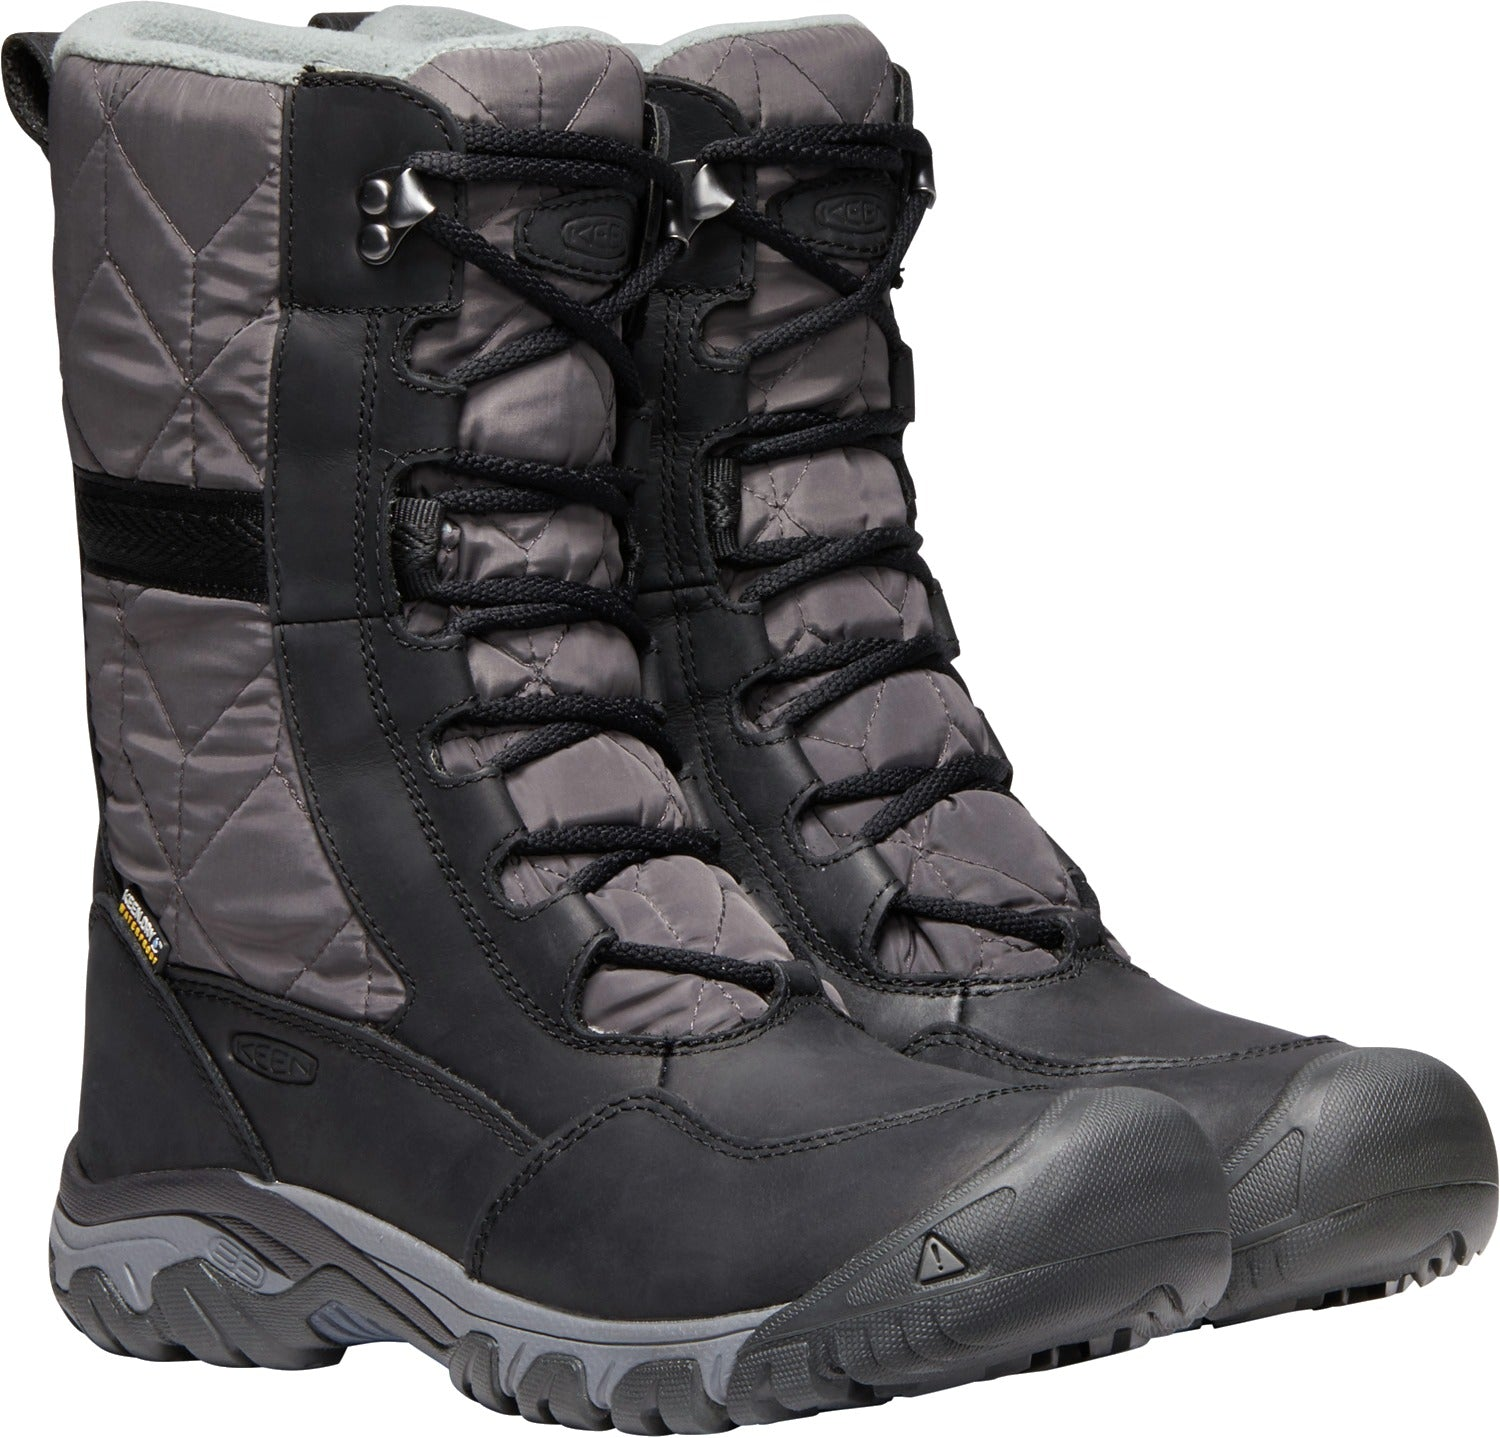 'Keen' 1019915 - Women's HooDoo III Insulated Winter Boot - Black Magnet